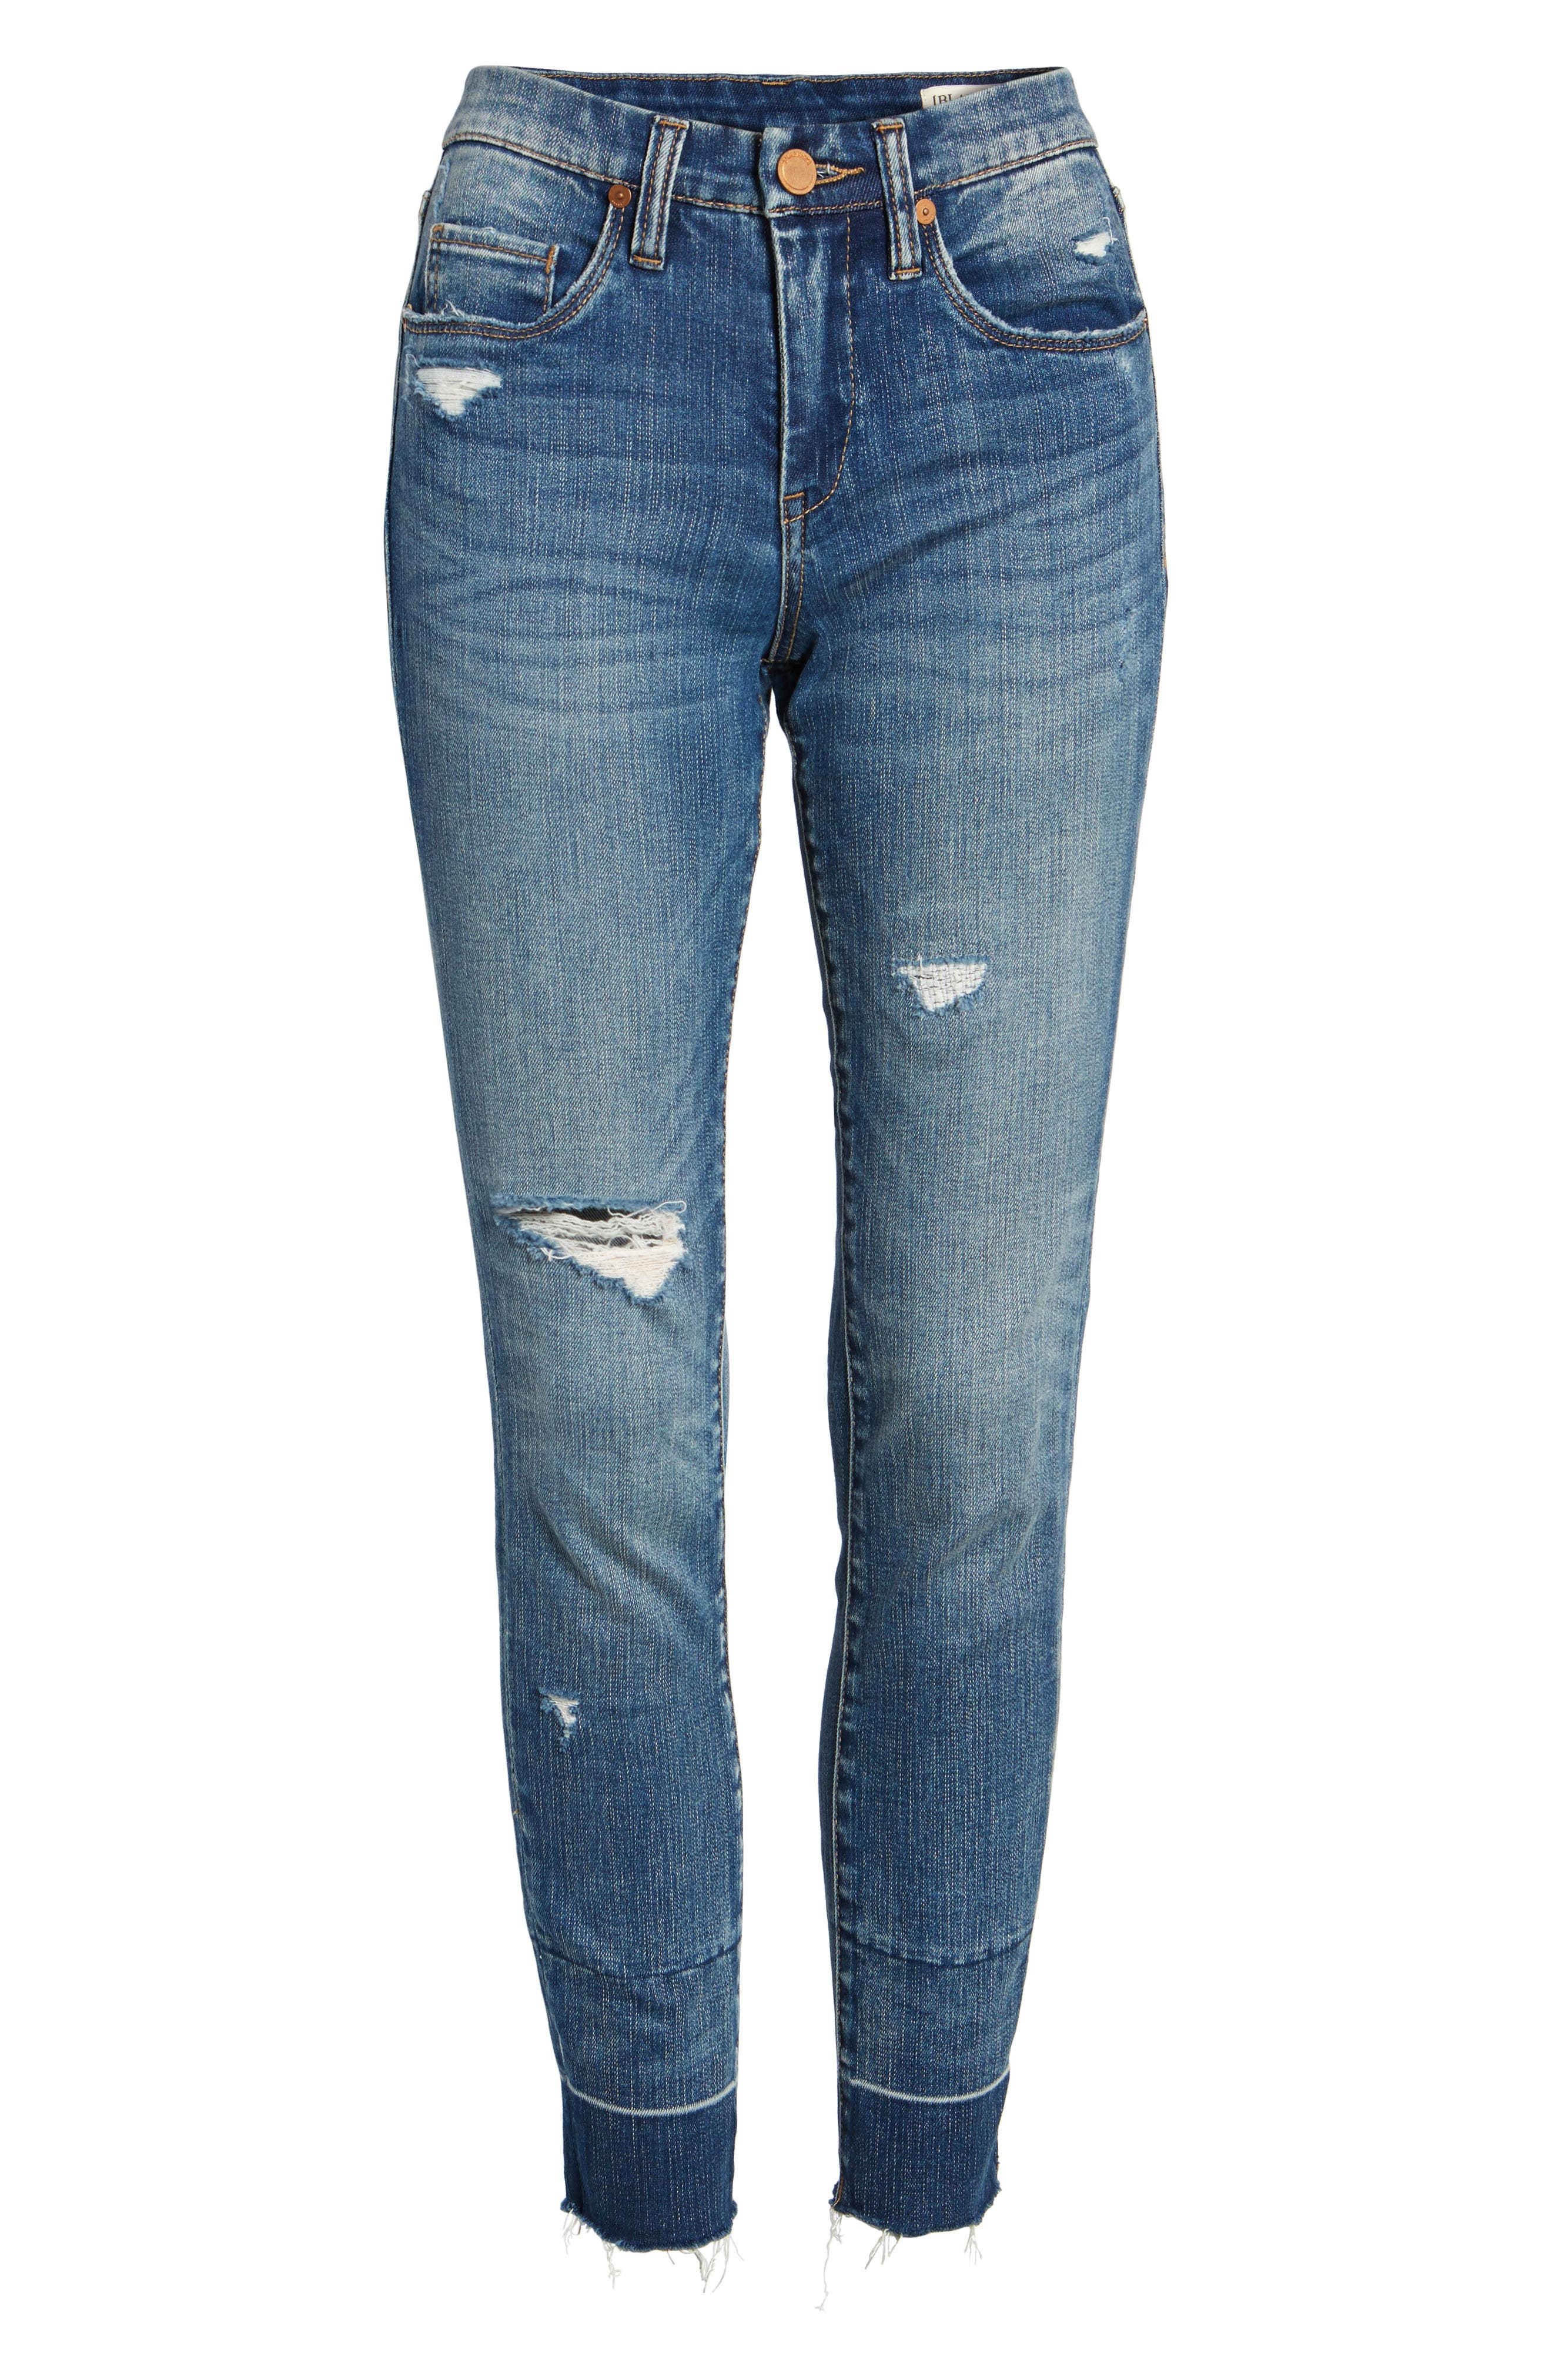 Ankle Skinny Jeans,                             Alternate thumbnail 8, color,                             Dark Wash